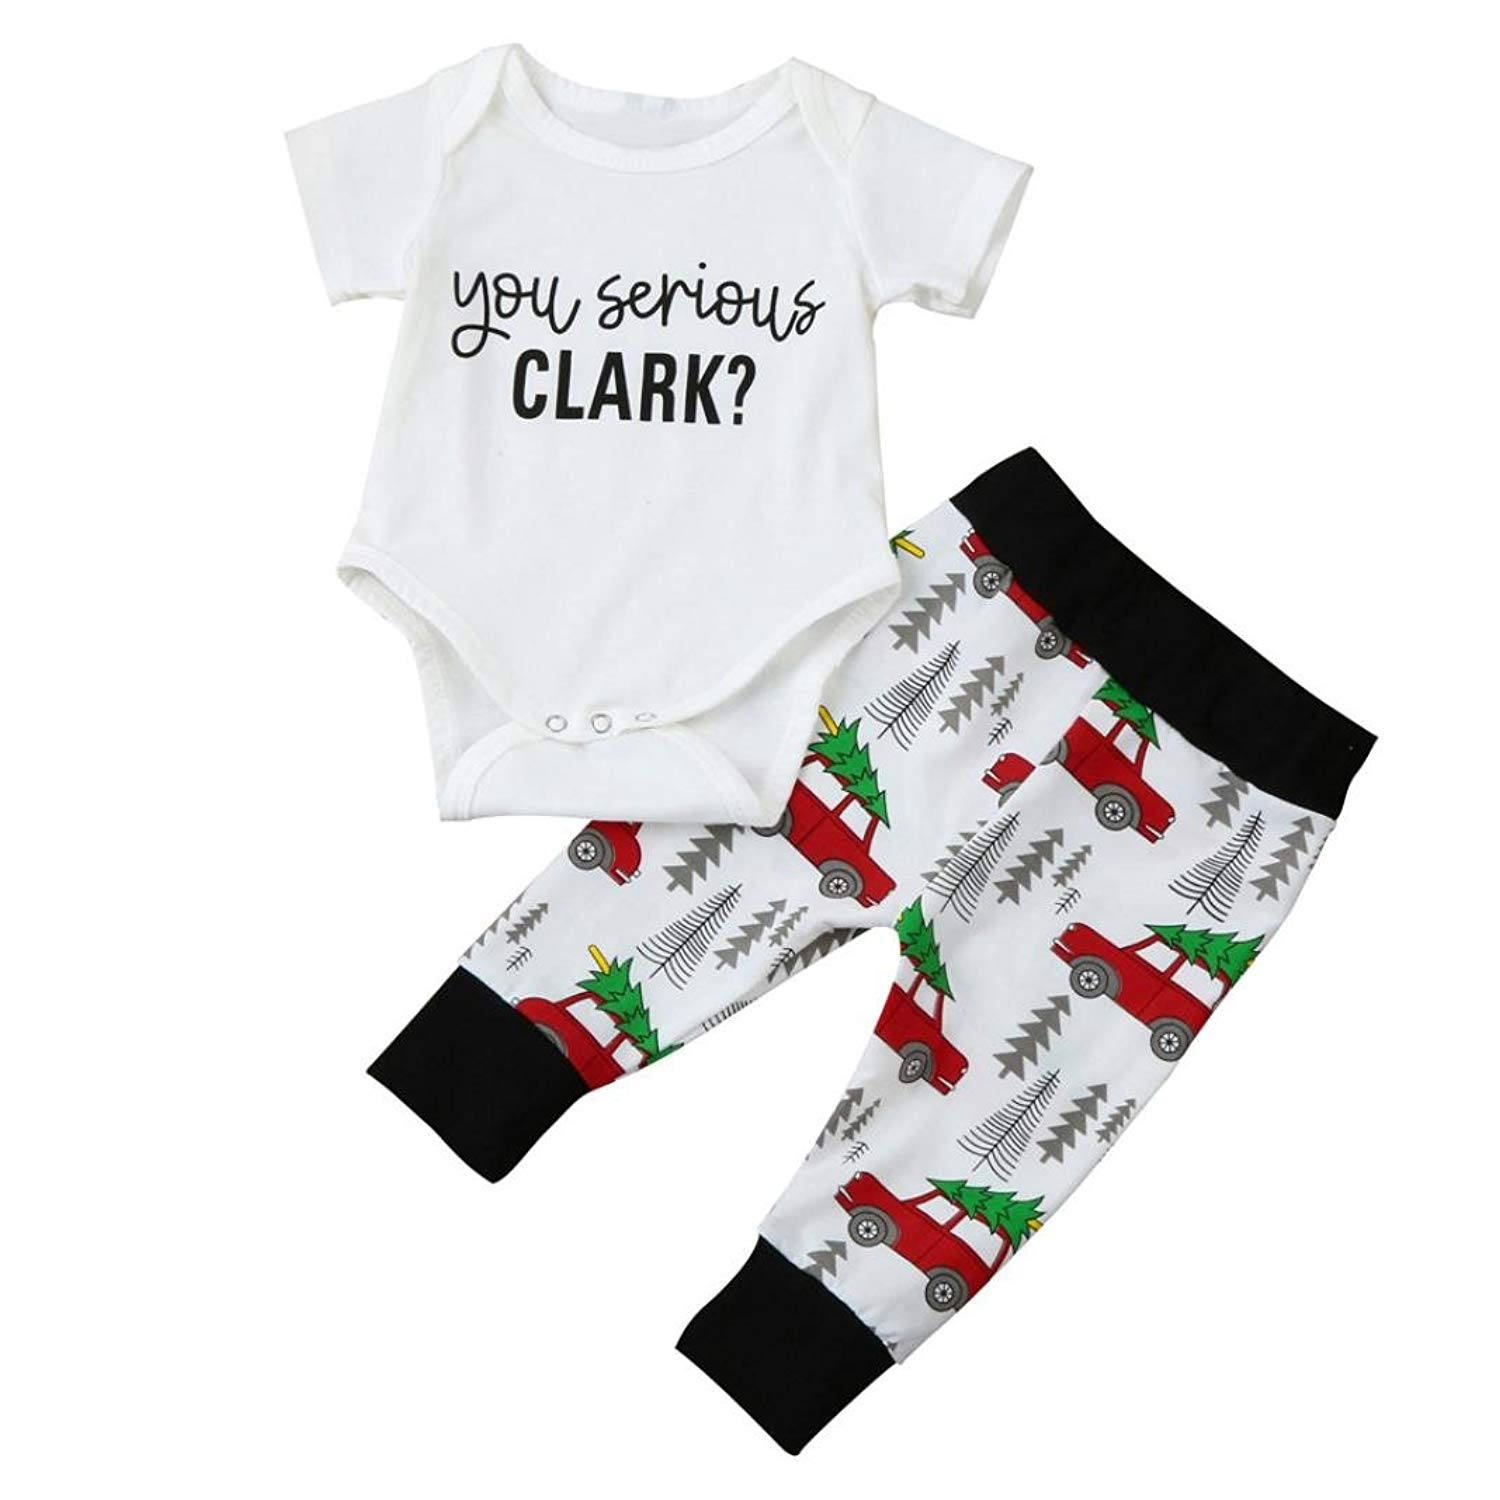 Memela Shop The Look (TM) New Fall/Winter Layette Gift Set Matching Family Christmas Outfits Clothes Set